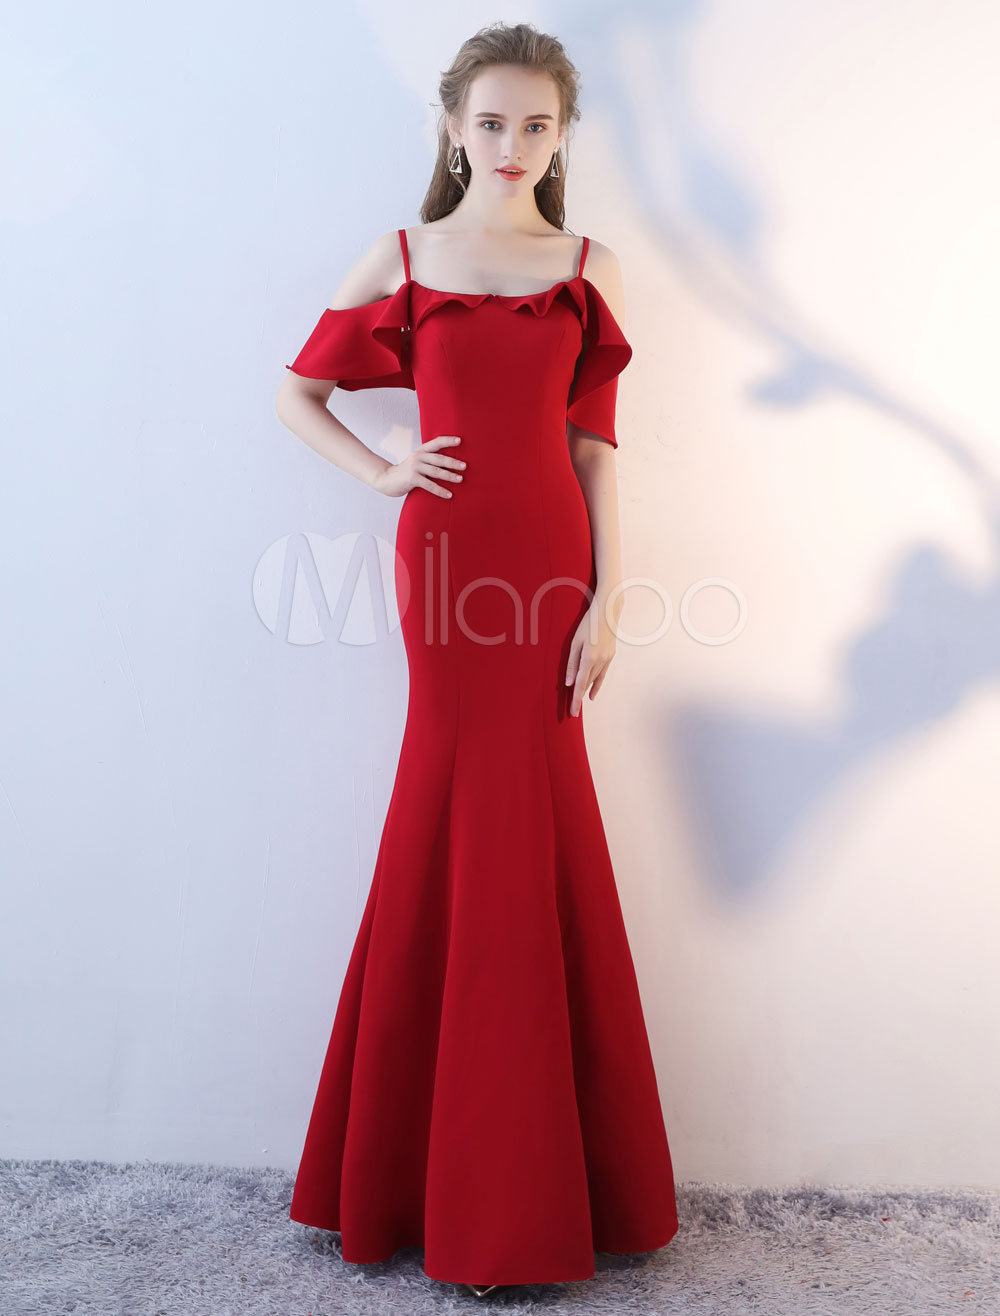 Prom Dresses Long Off The Shoulder Evening Dress Mermaid Ruffles Straps Burgundy Floor Length Formal Occasion Dress